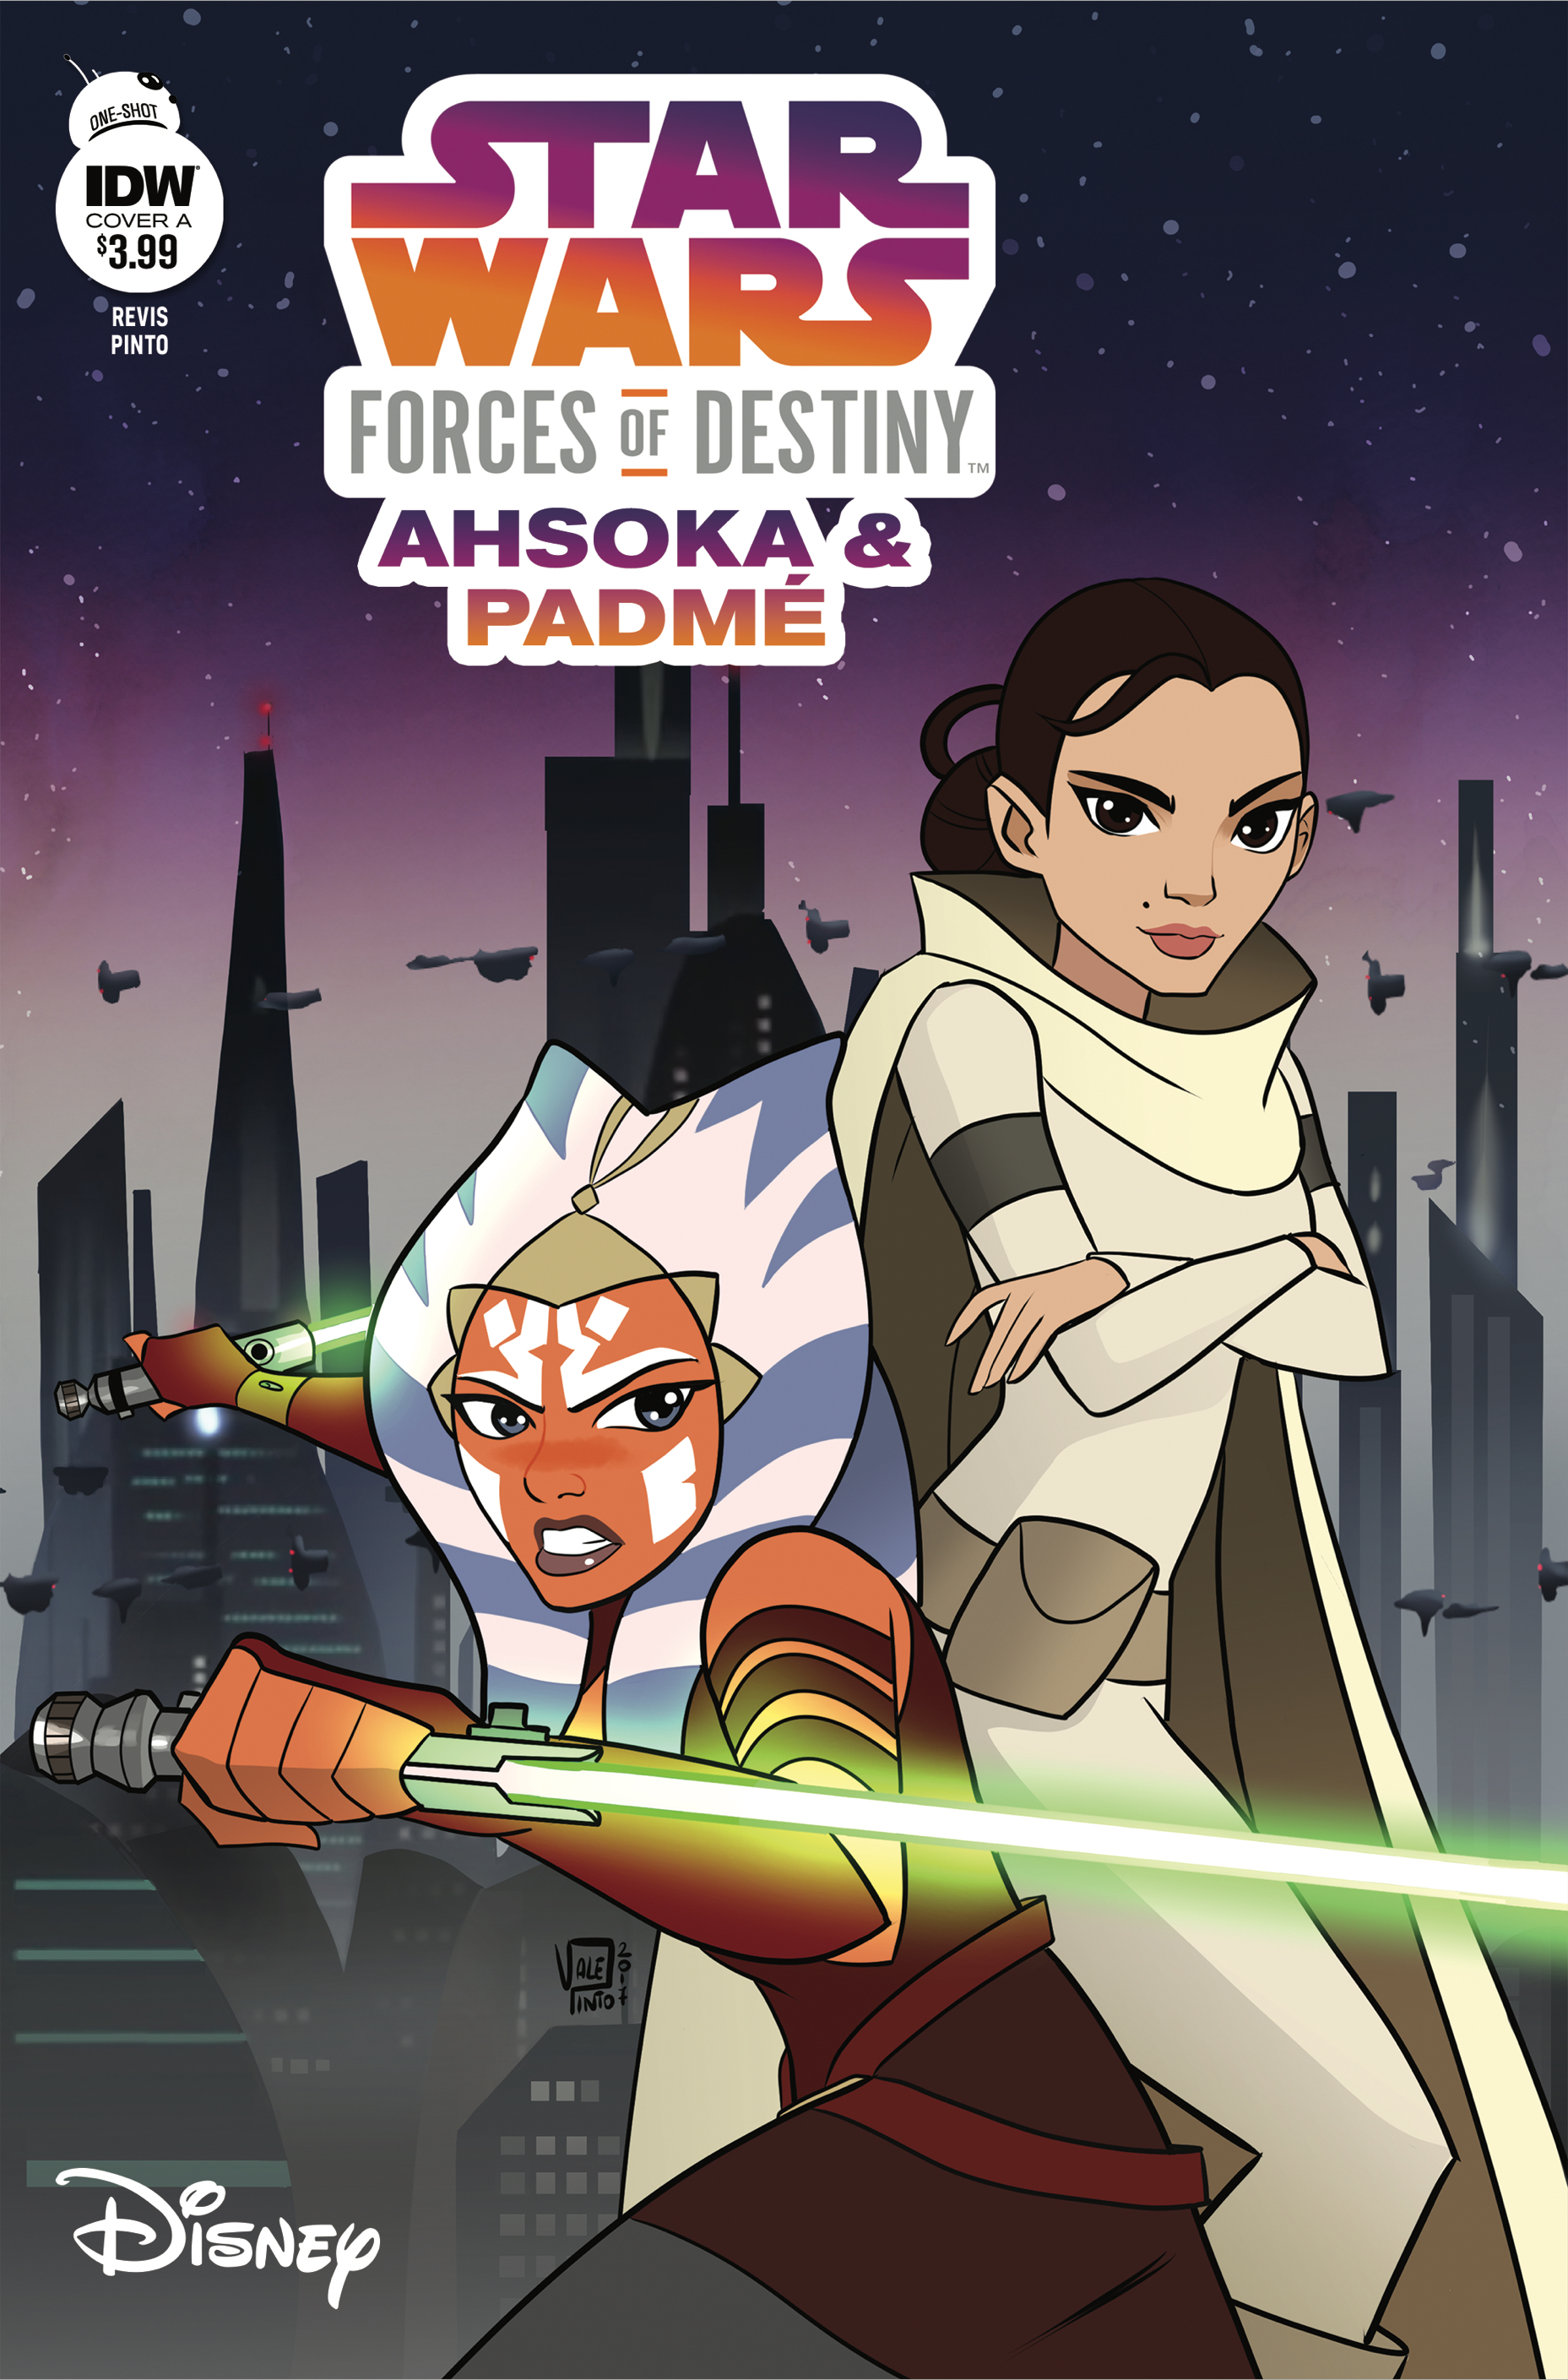 STAR WARS ADV FORCES OF DESTINY AHSOKA & PADME CVR A